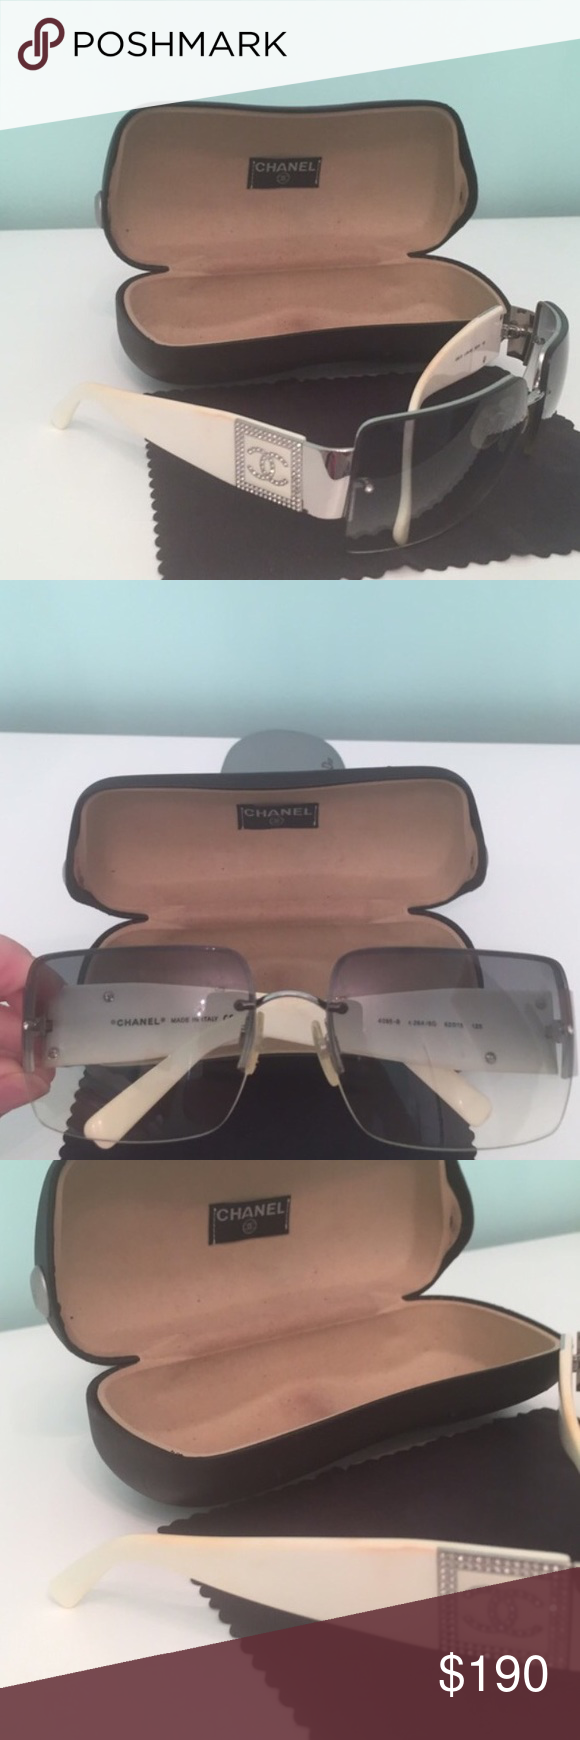 acd90abfdd5f Chanel sunglasses Authentic Chanel sunglasses white with crystals on side    light gray lenses